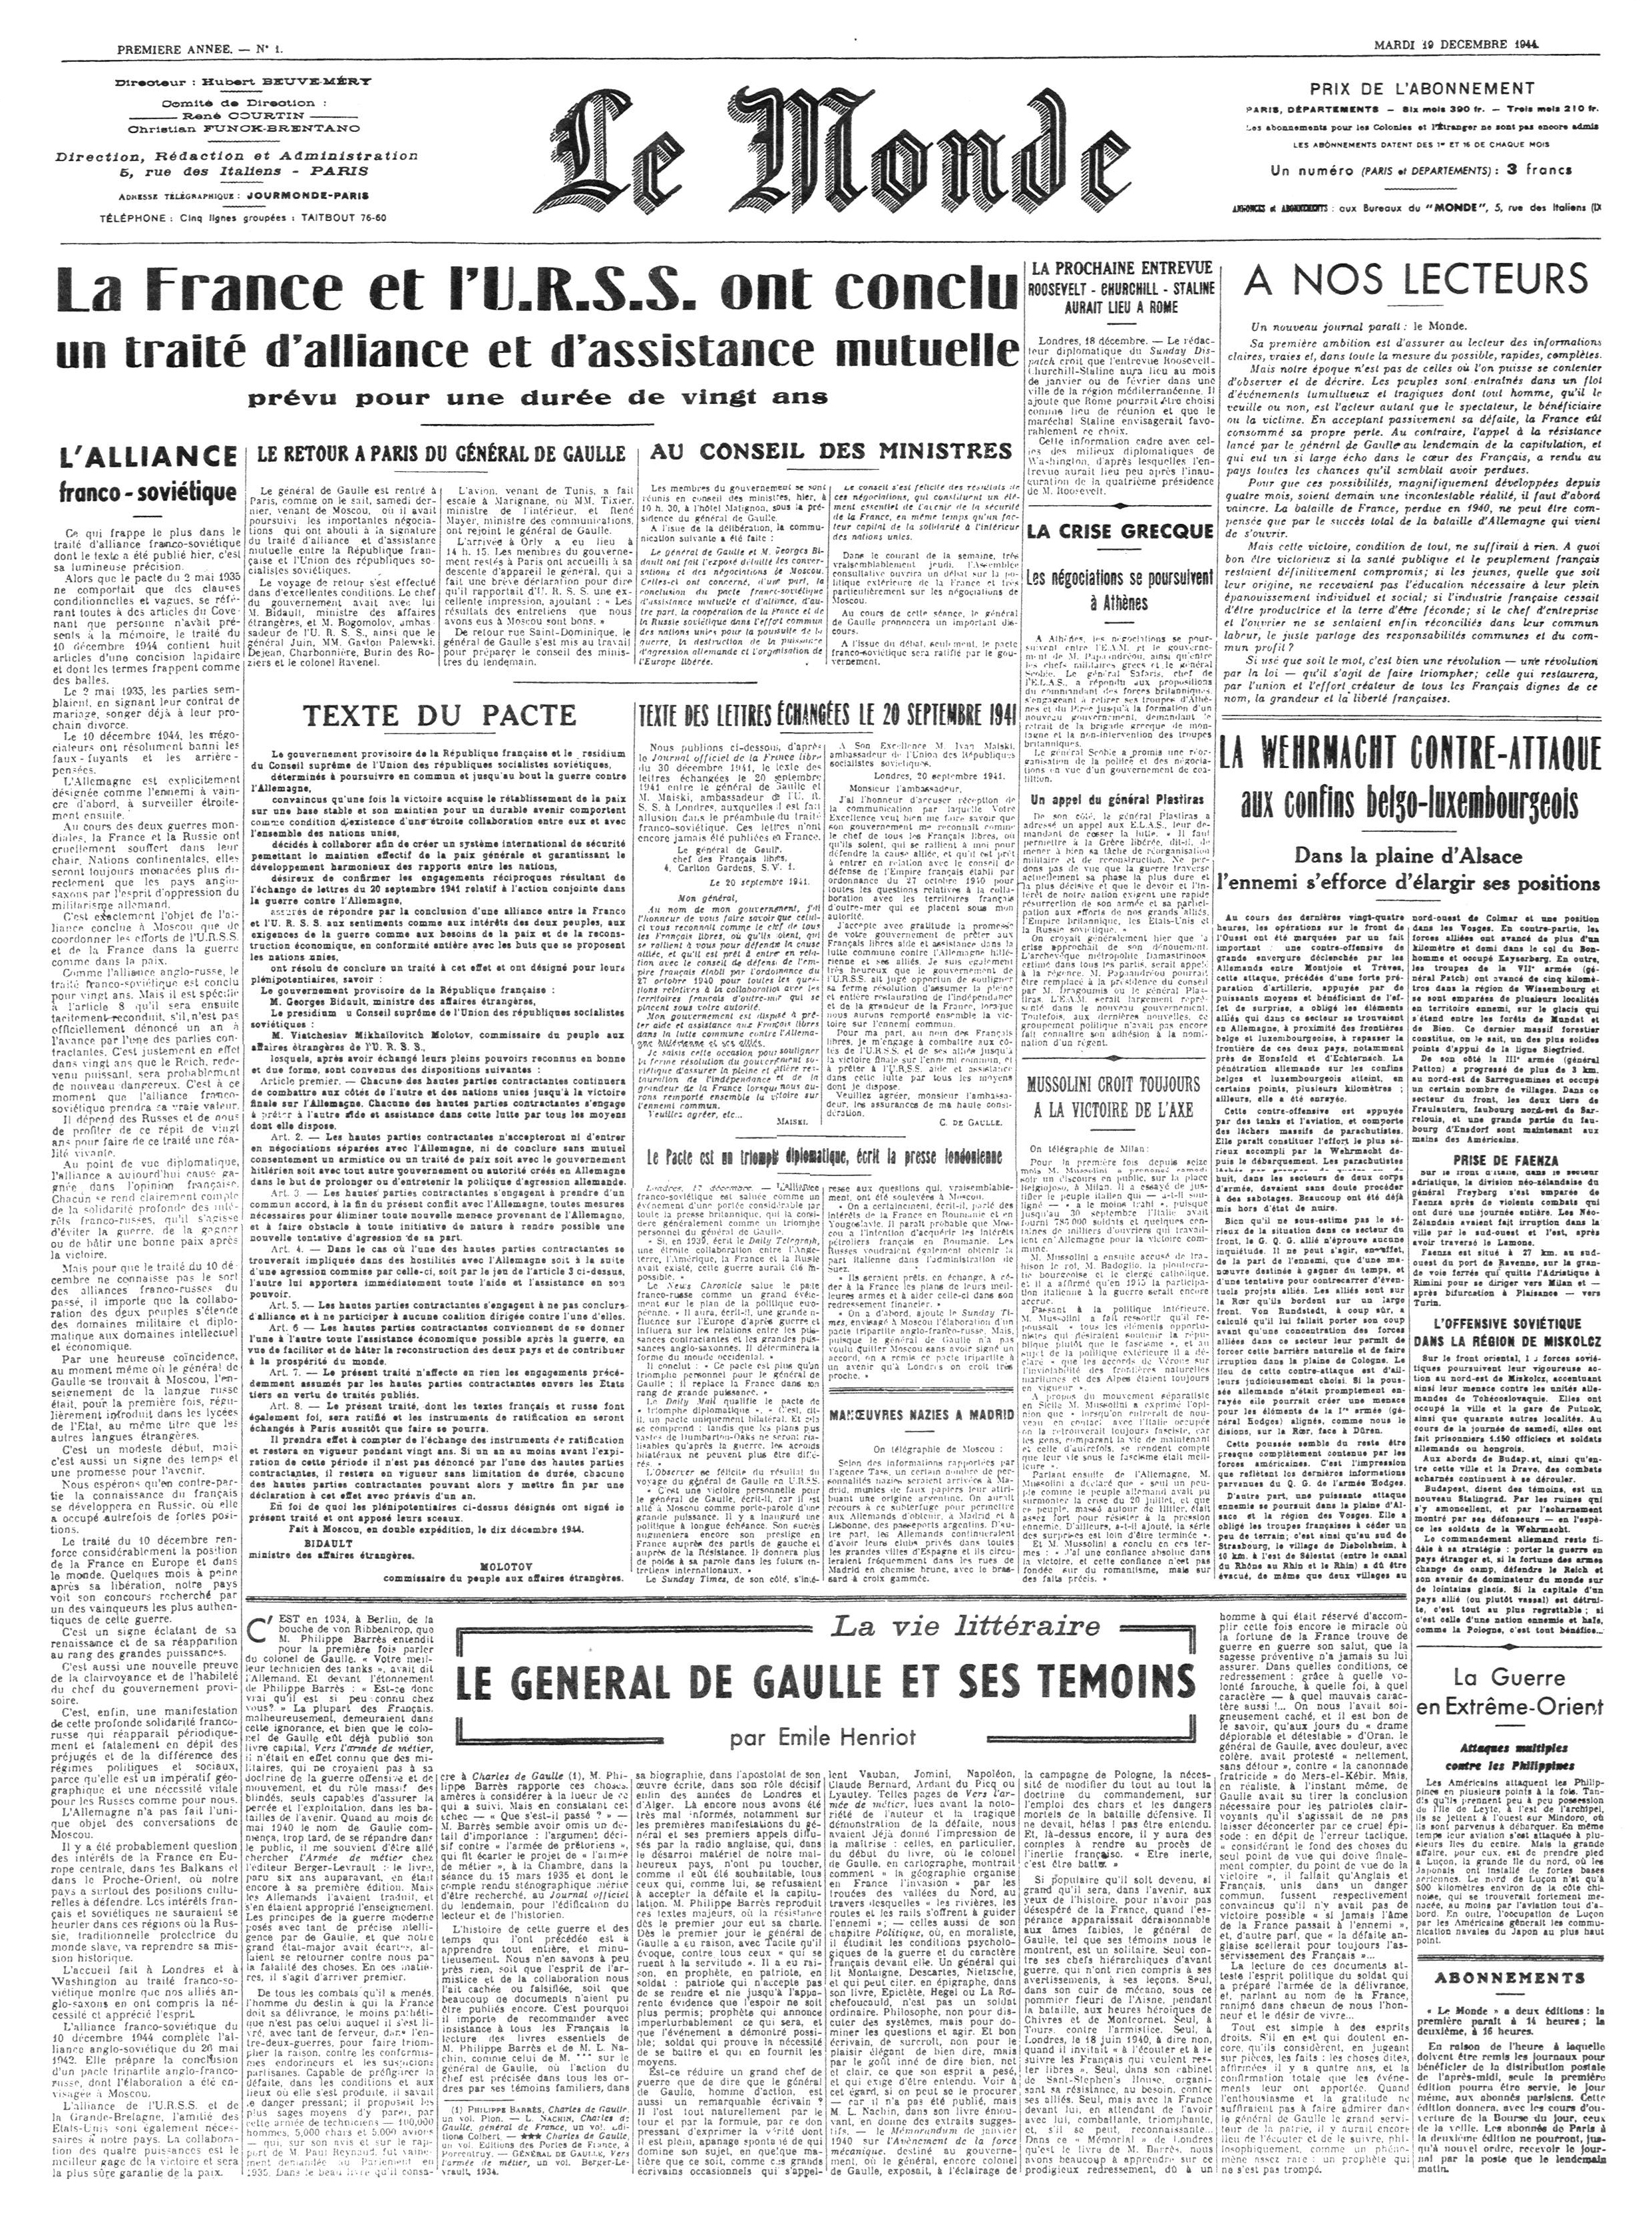 Le Monde - Wikipedia, the free encyclopedia